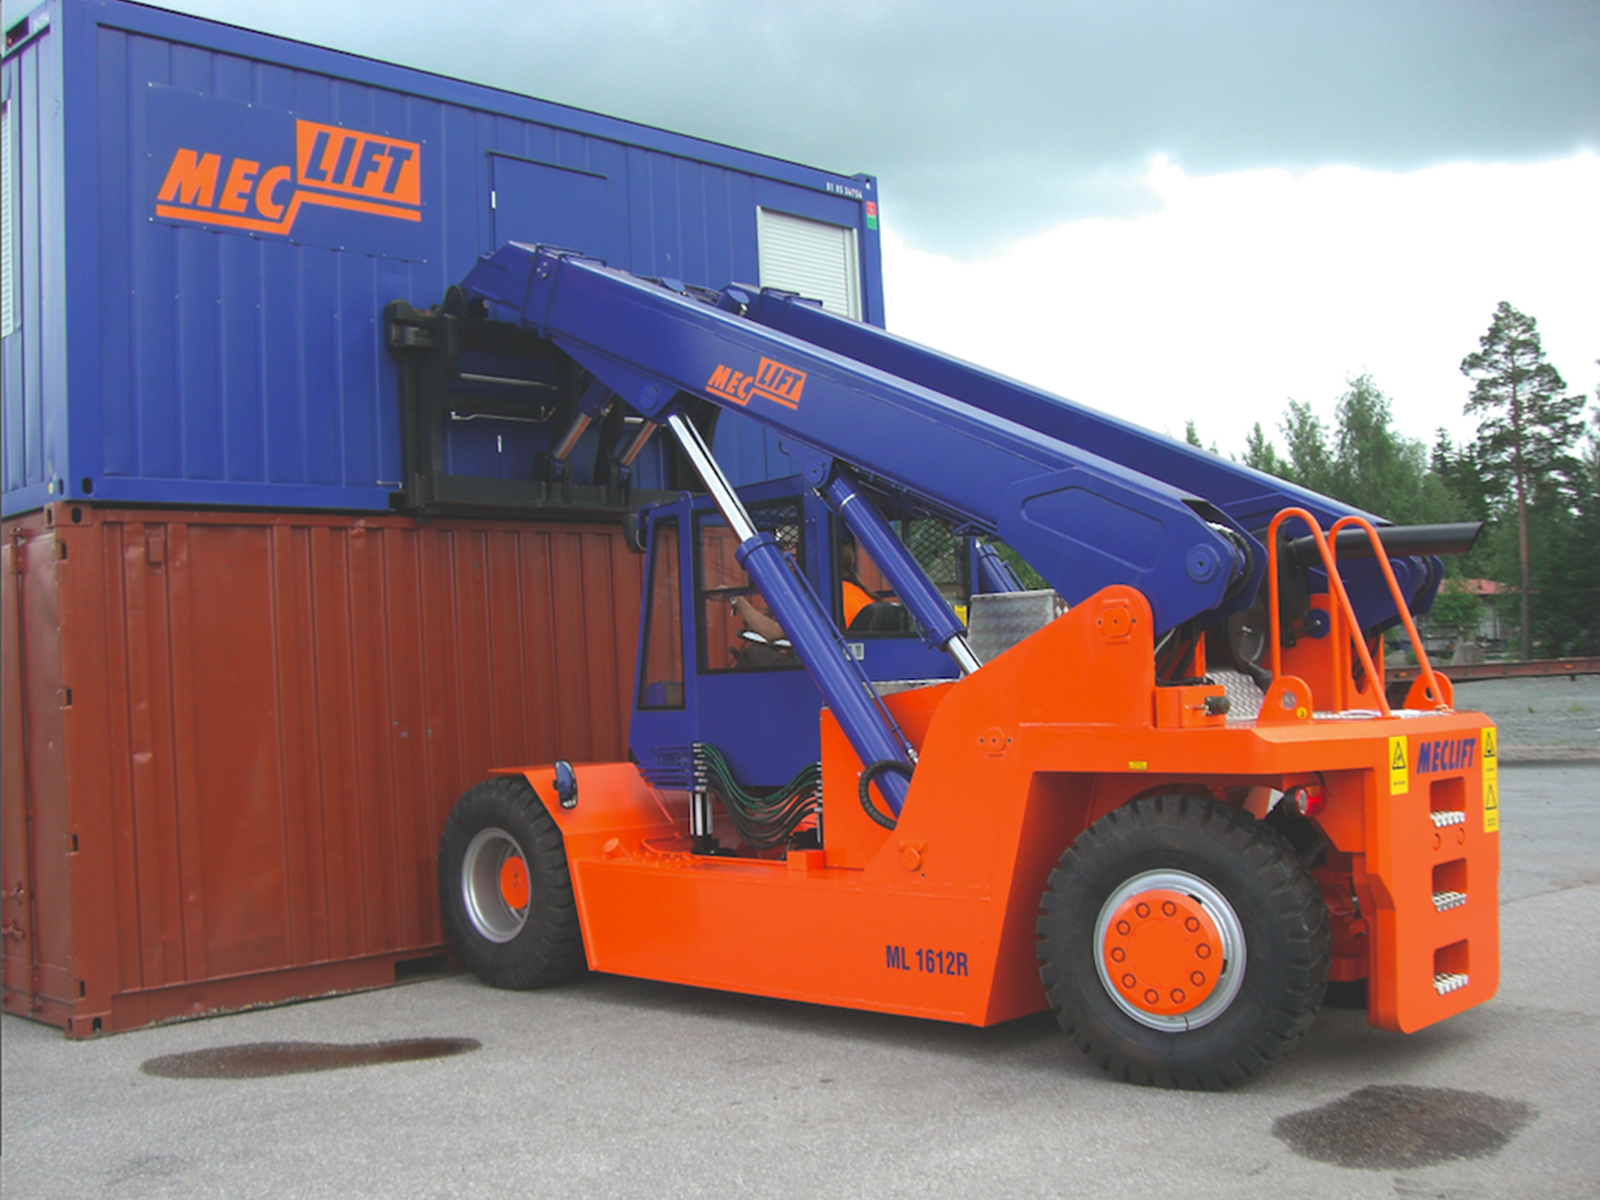 Meclift reach truck